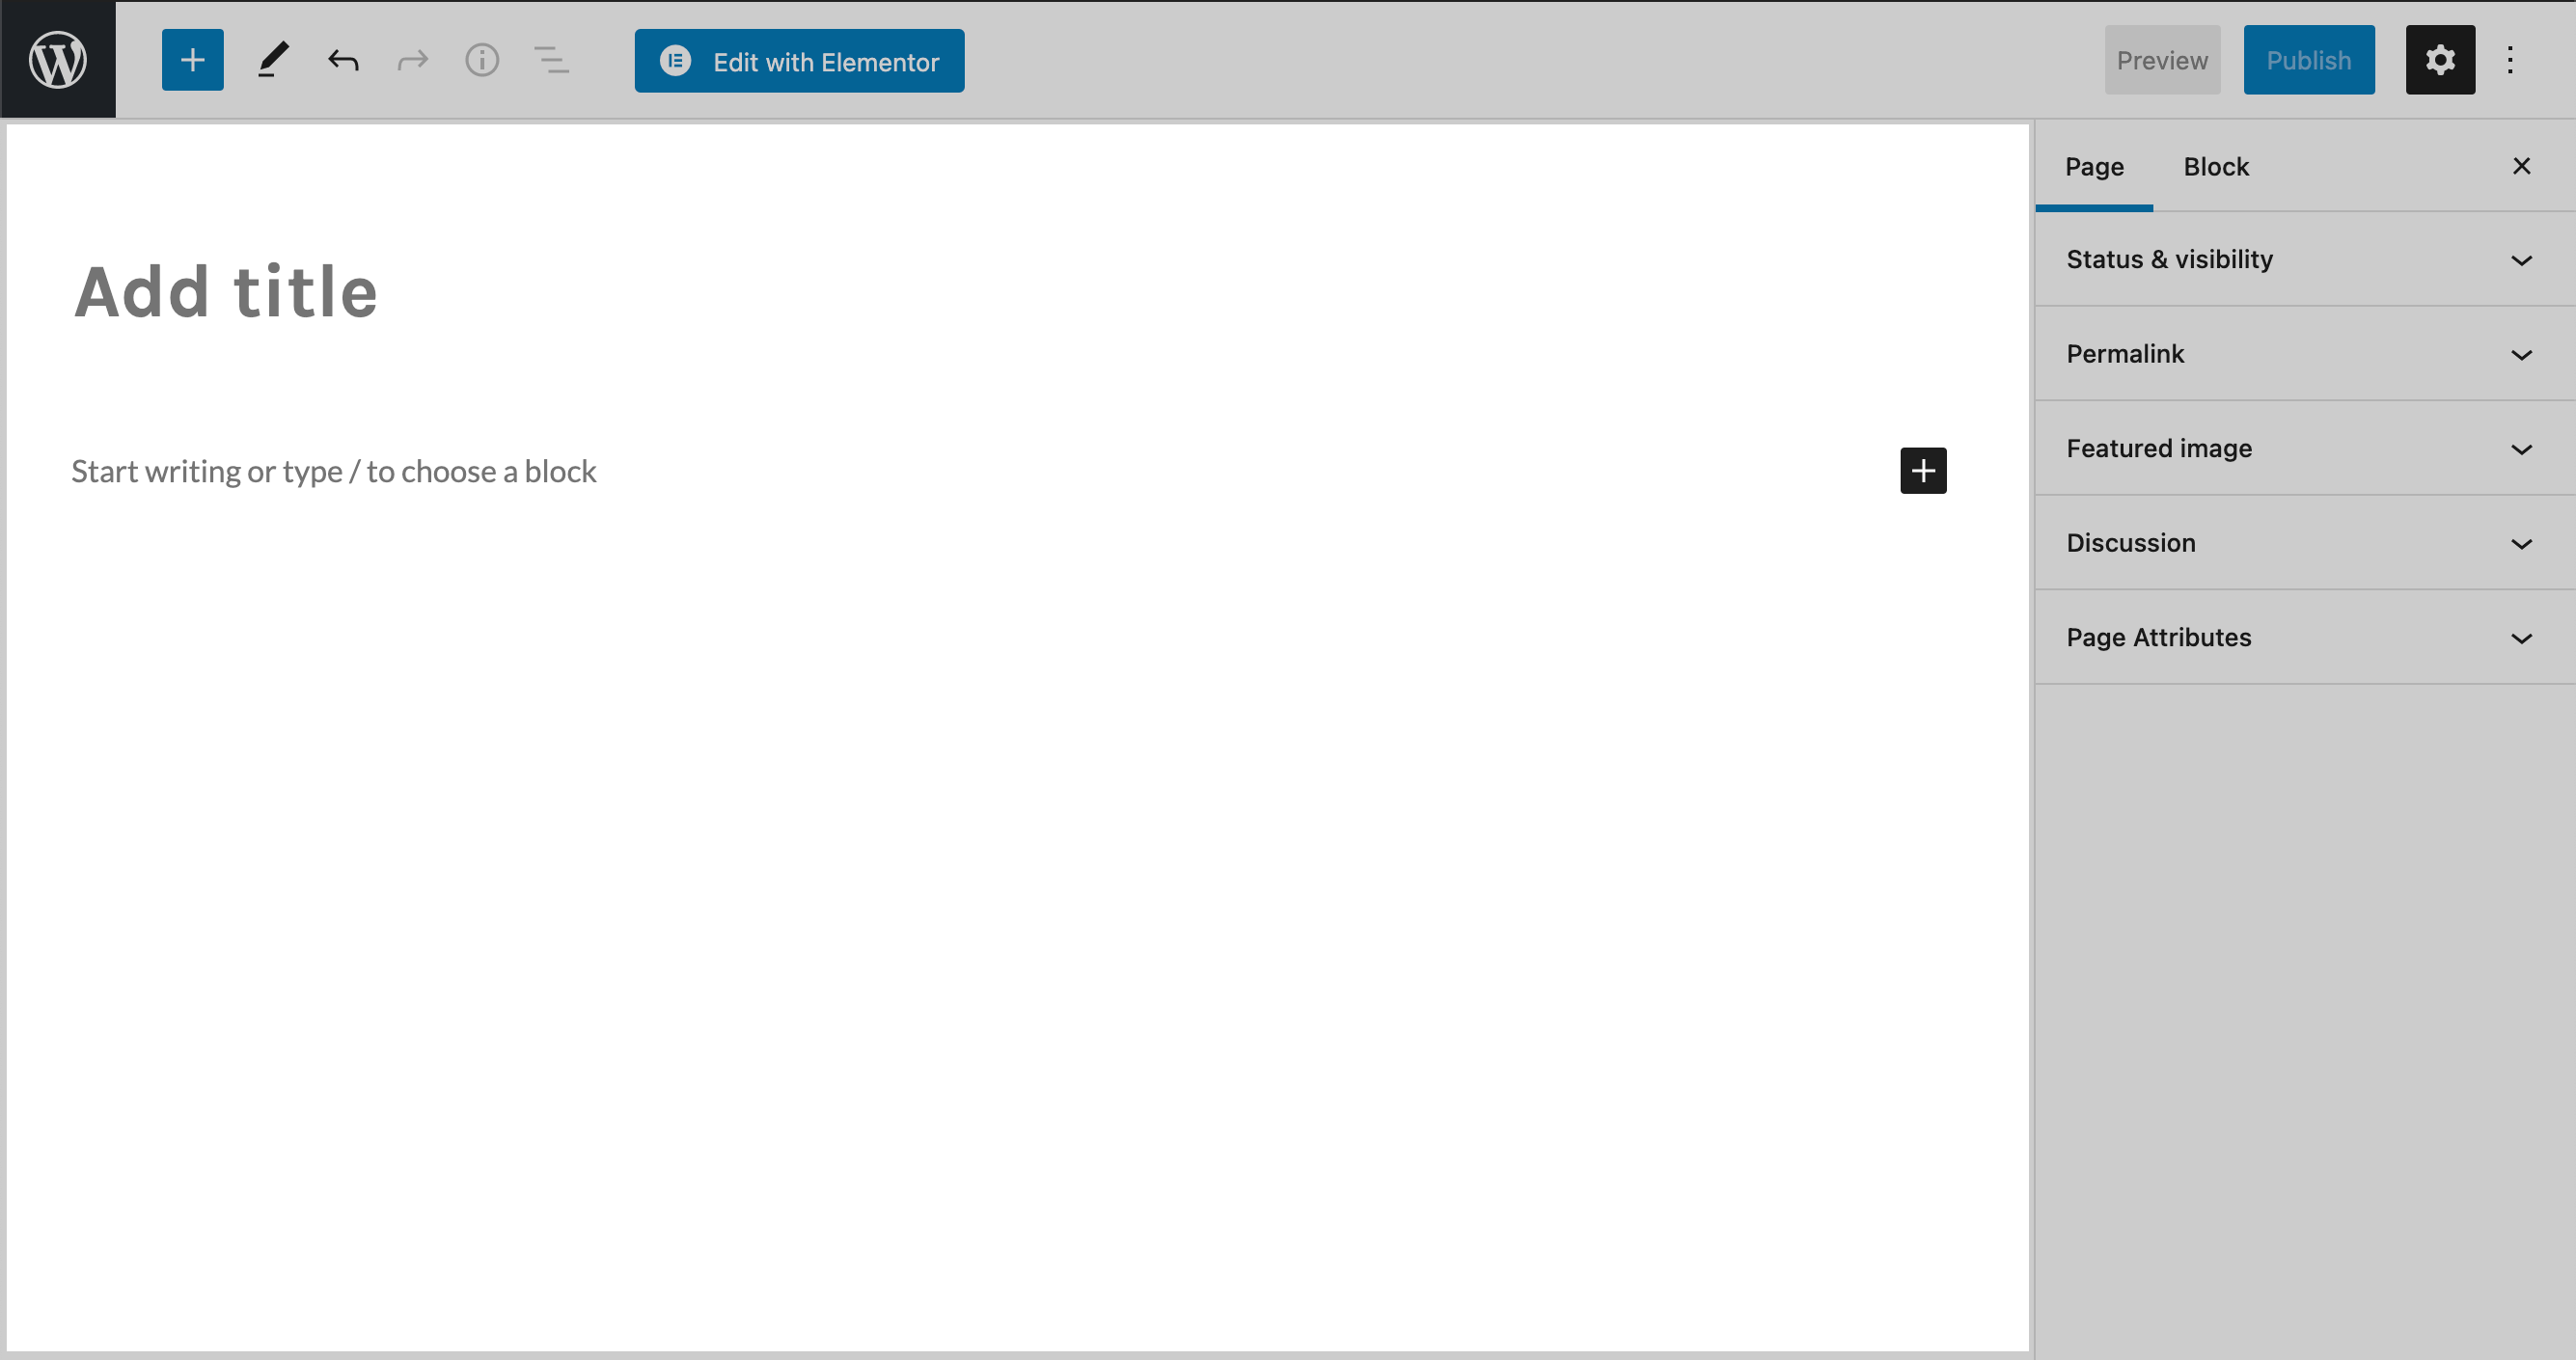 Screenshot of the content editor